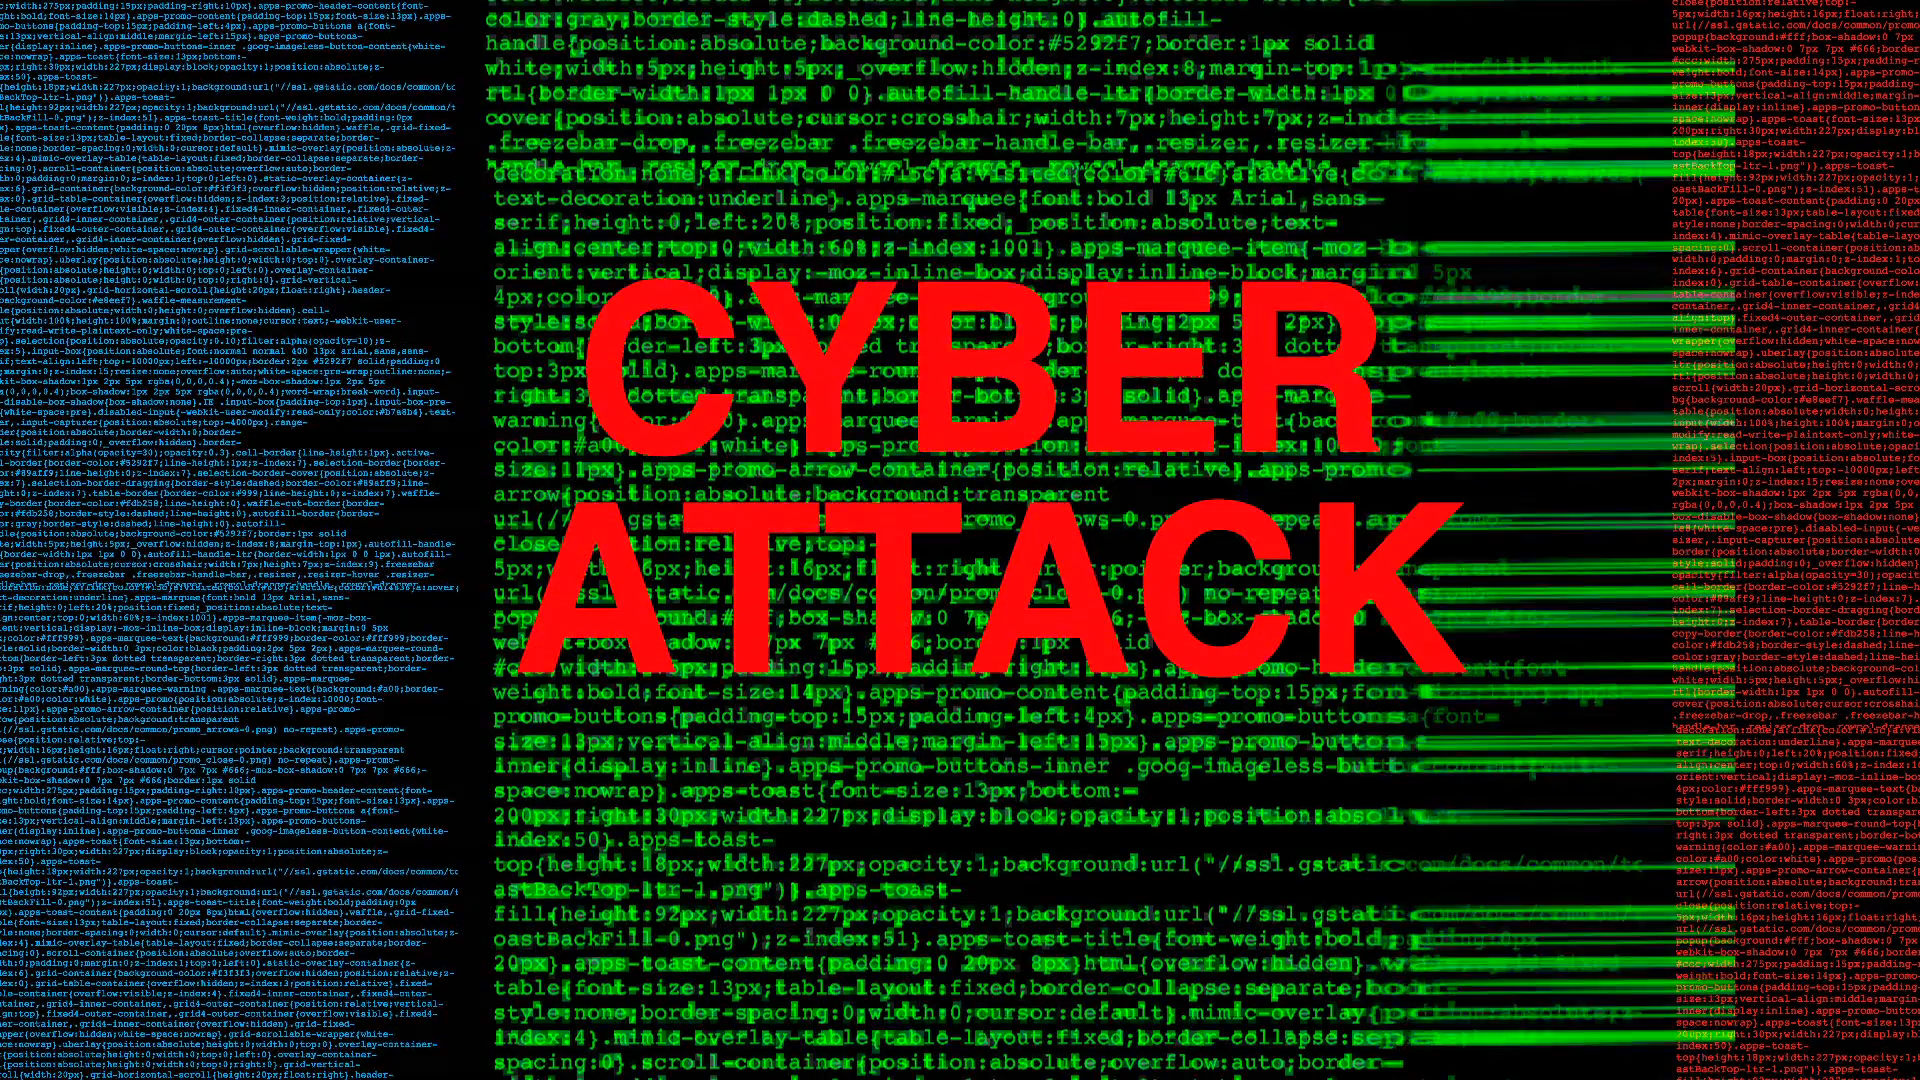 cyber-attack-and-data-base-hack-on-a-computer-system-internet-cyber-crime-and-data-loss_4he5sl48x__F0007